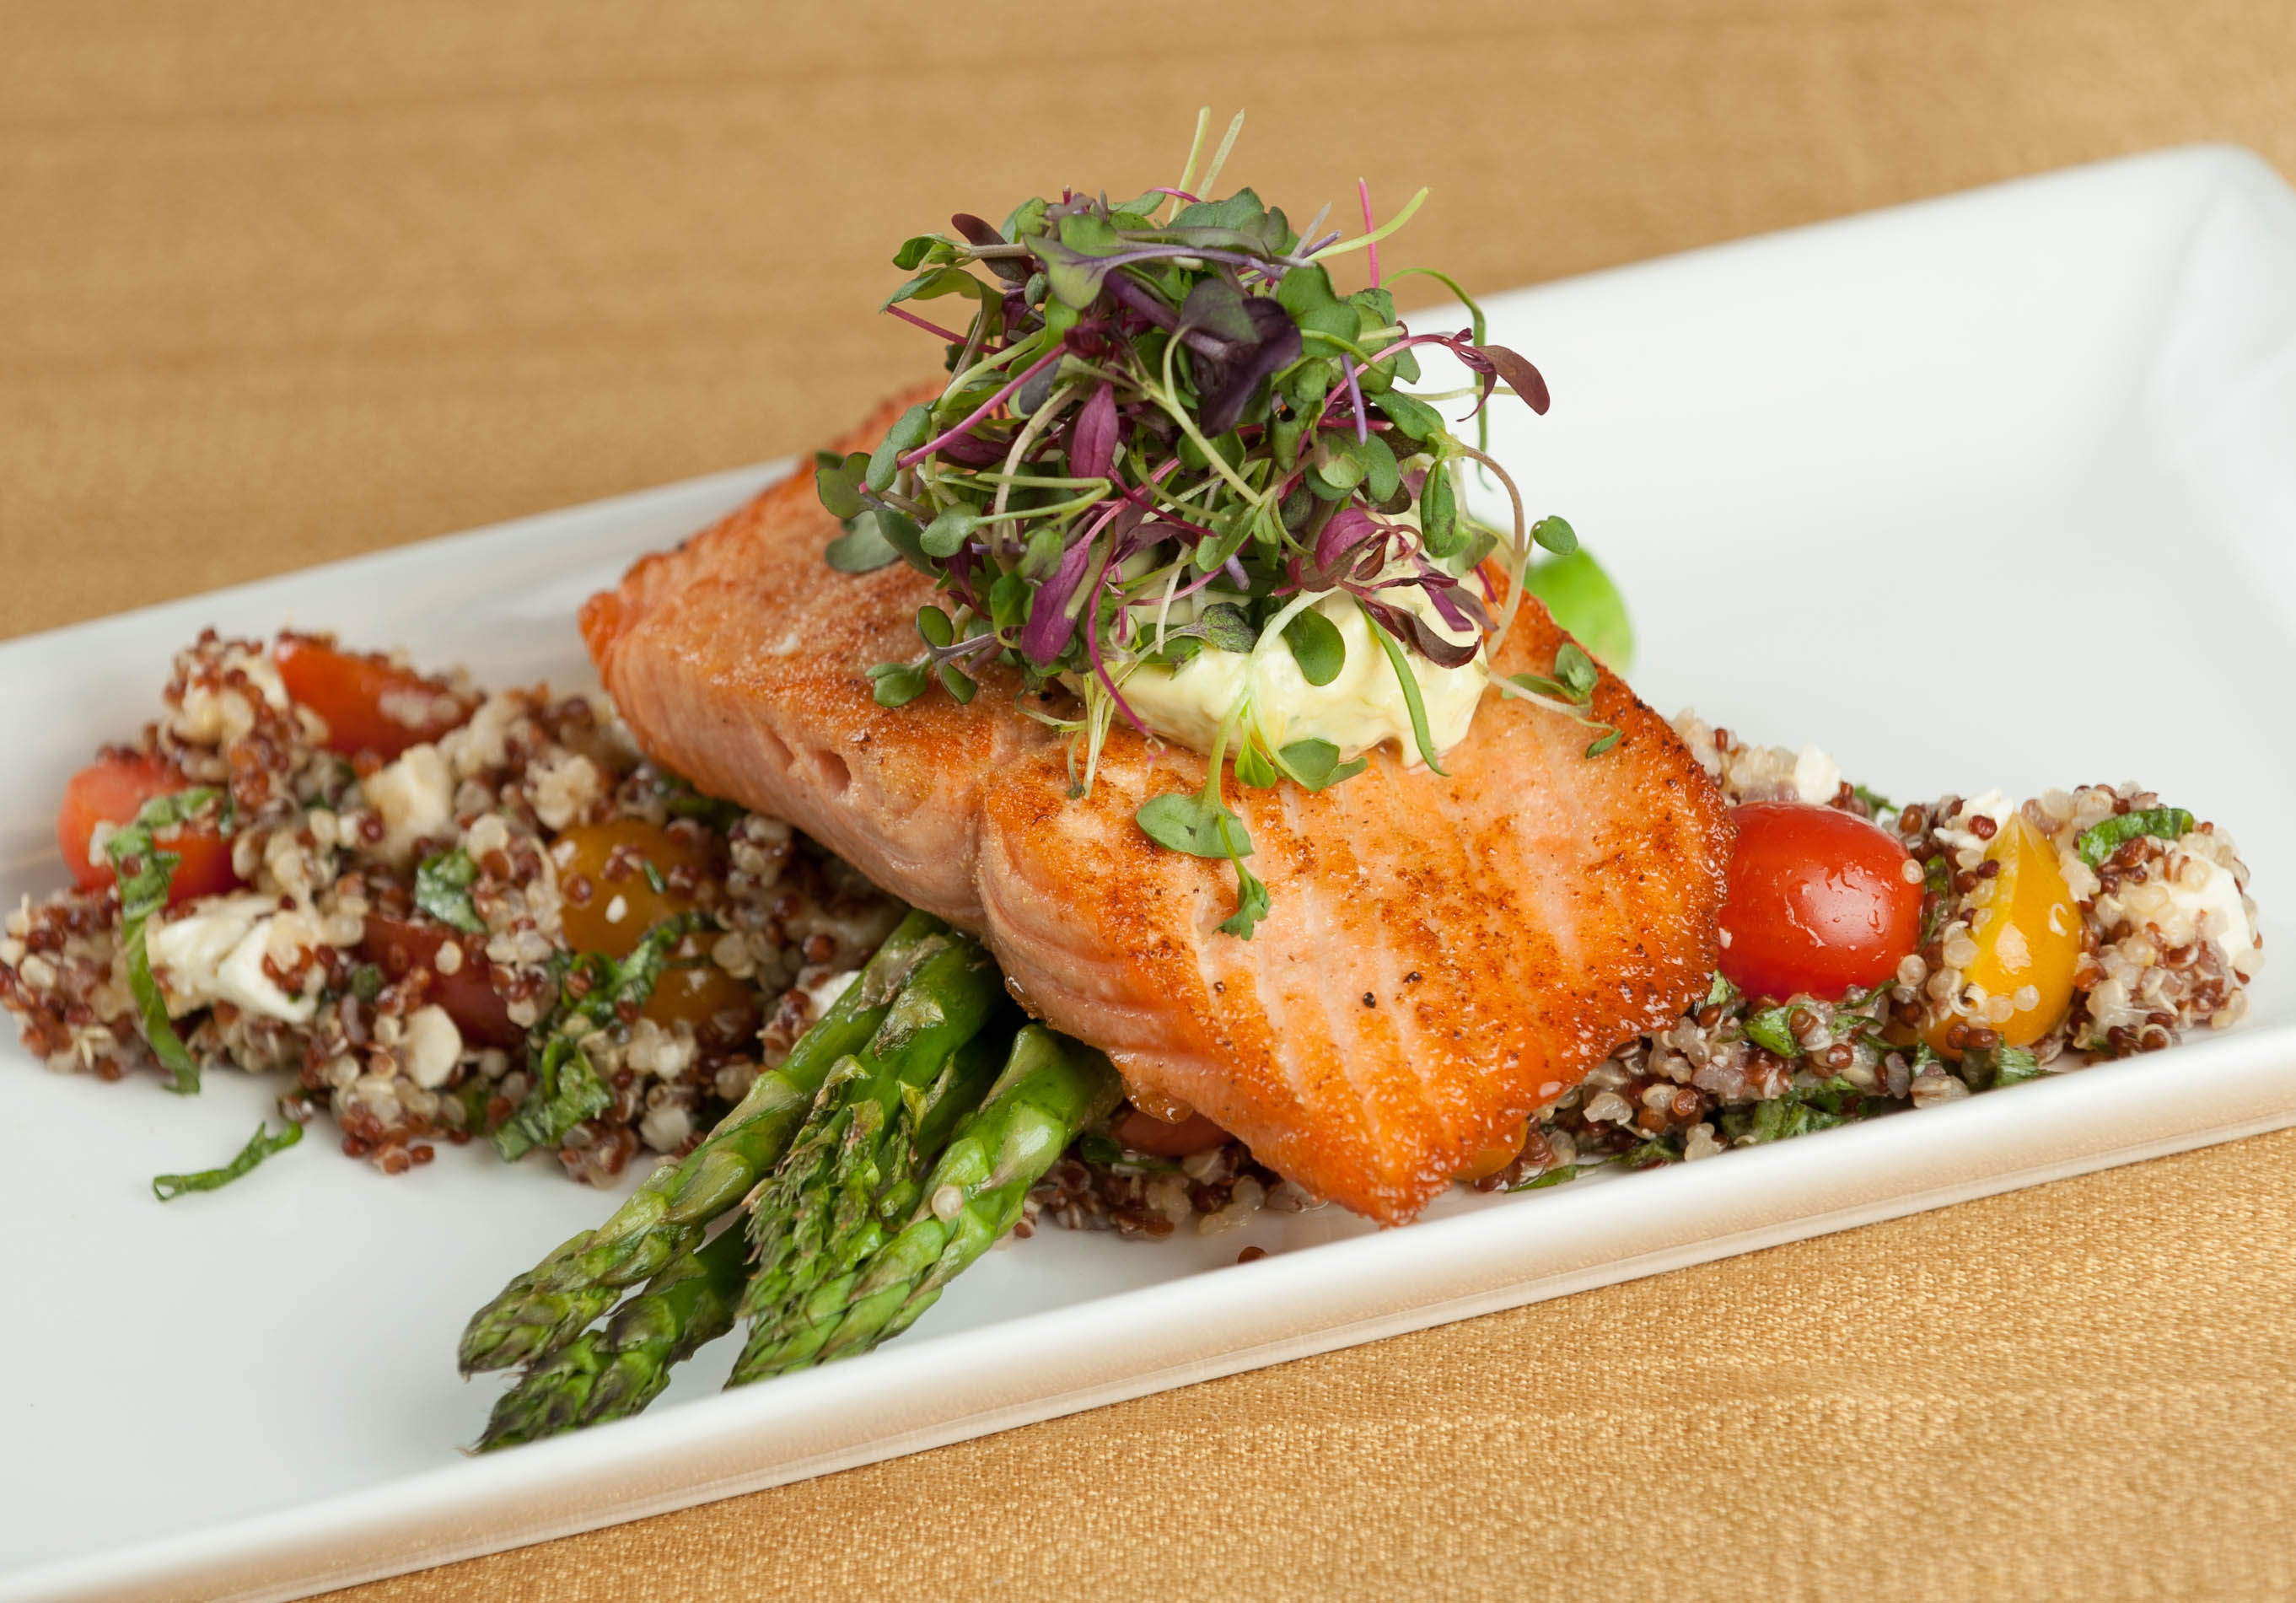 Infinity Events and Catering's Ginger Salmon